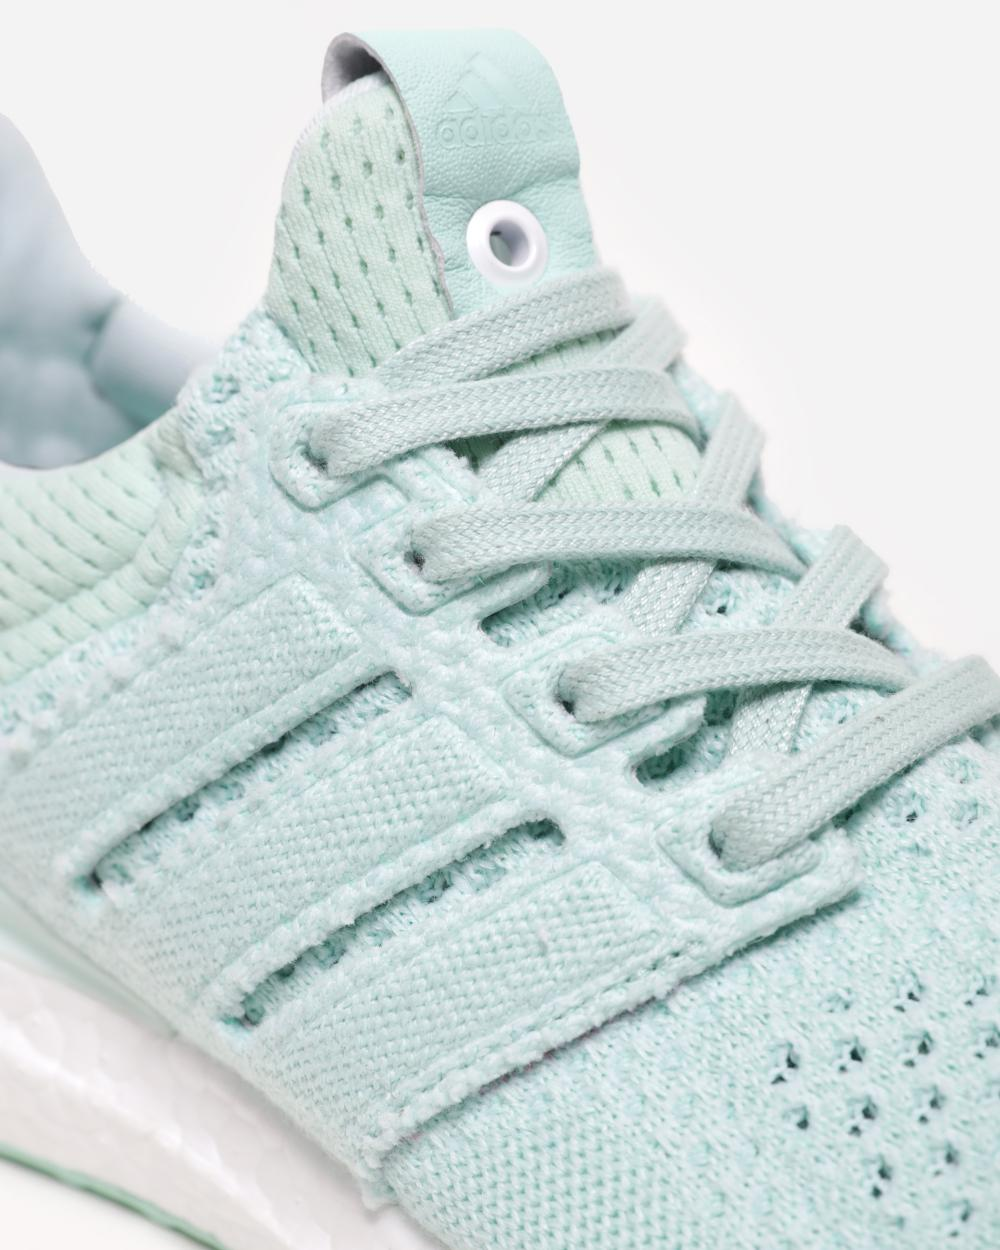 NAKED x Adidas Ultra Boost Waves Pack